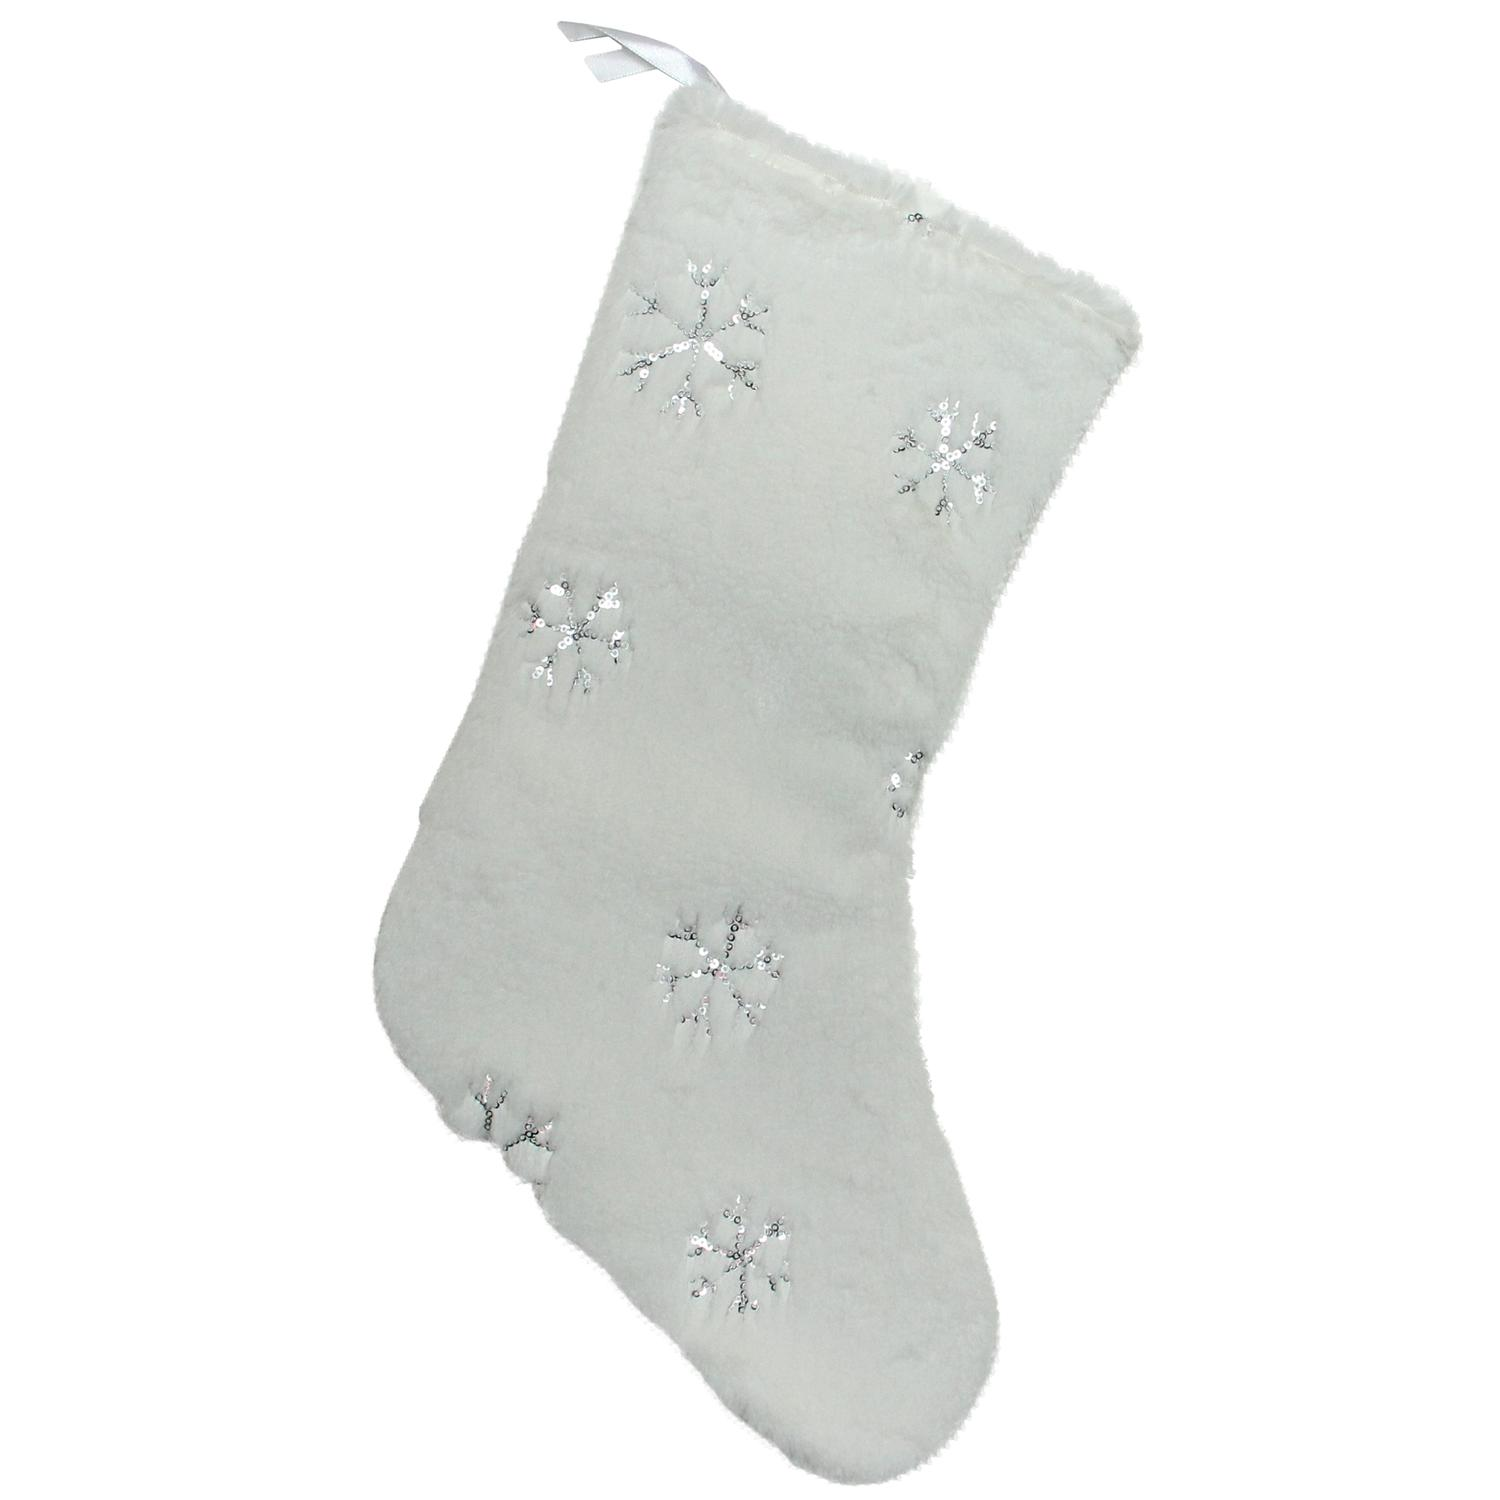 """18"""" White Faux Fur Christmas Stocking with Silver Sequined Snowflakes - image 2 de 2"""